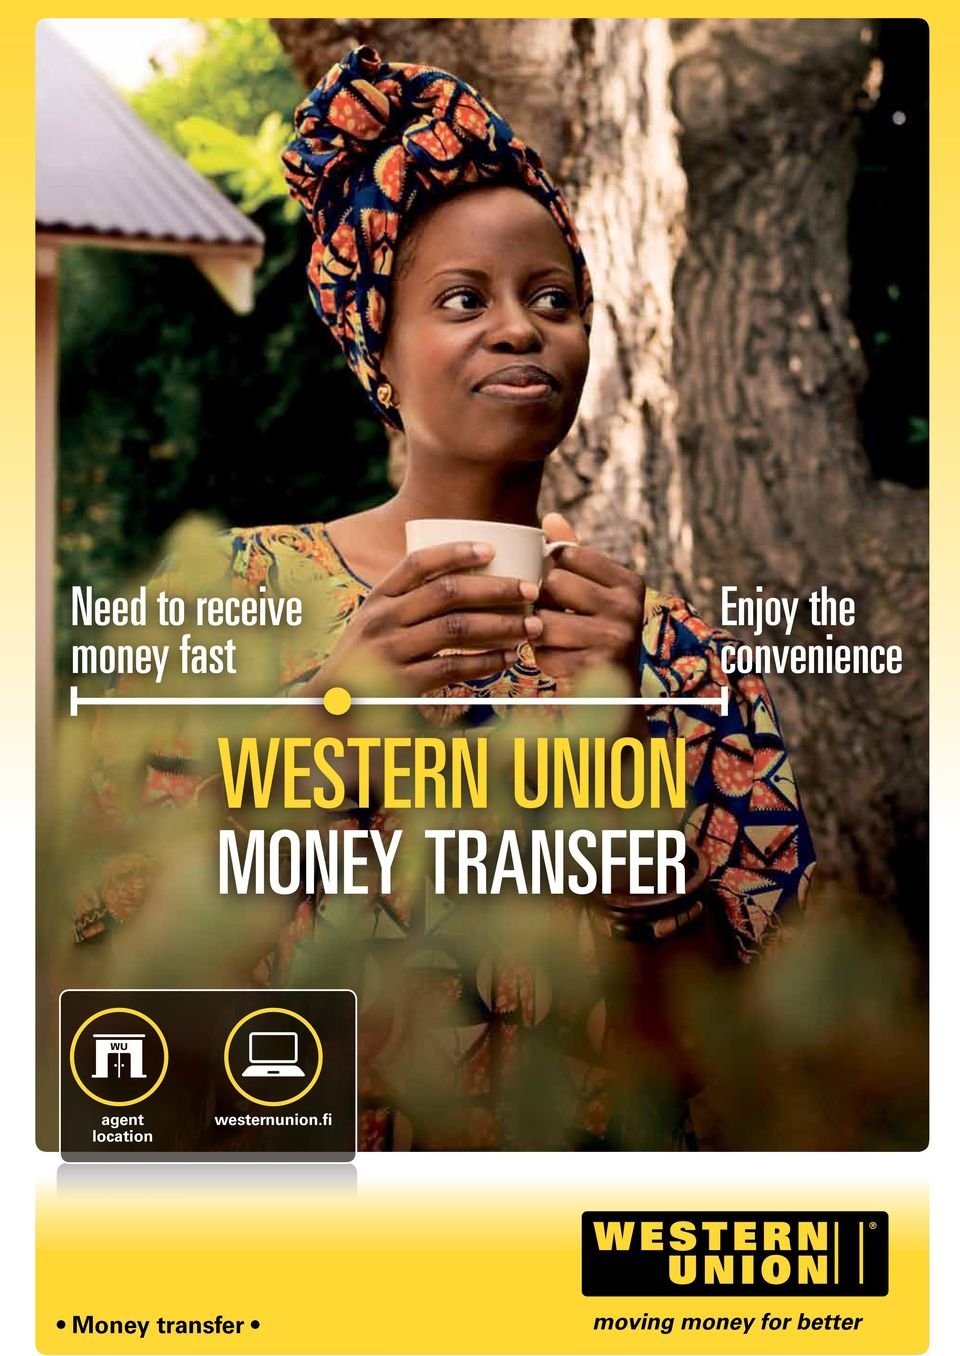 UNION MONEY TRANSFER agent